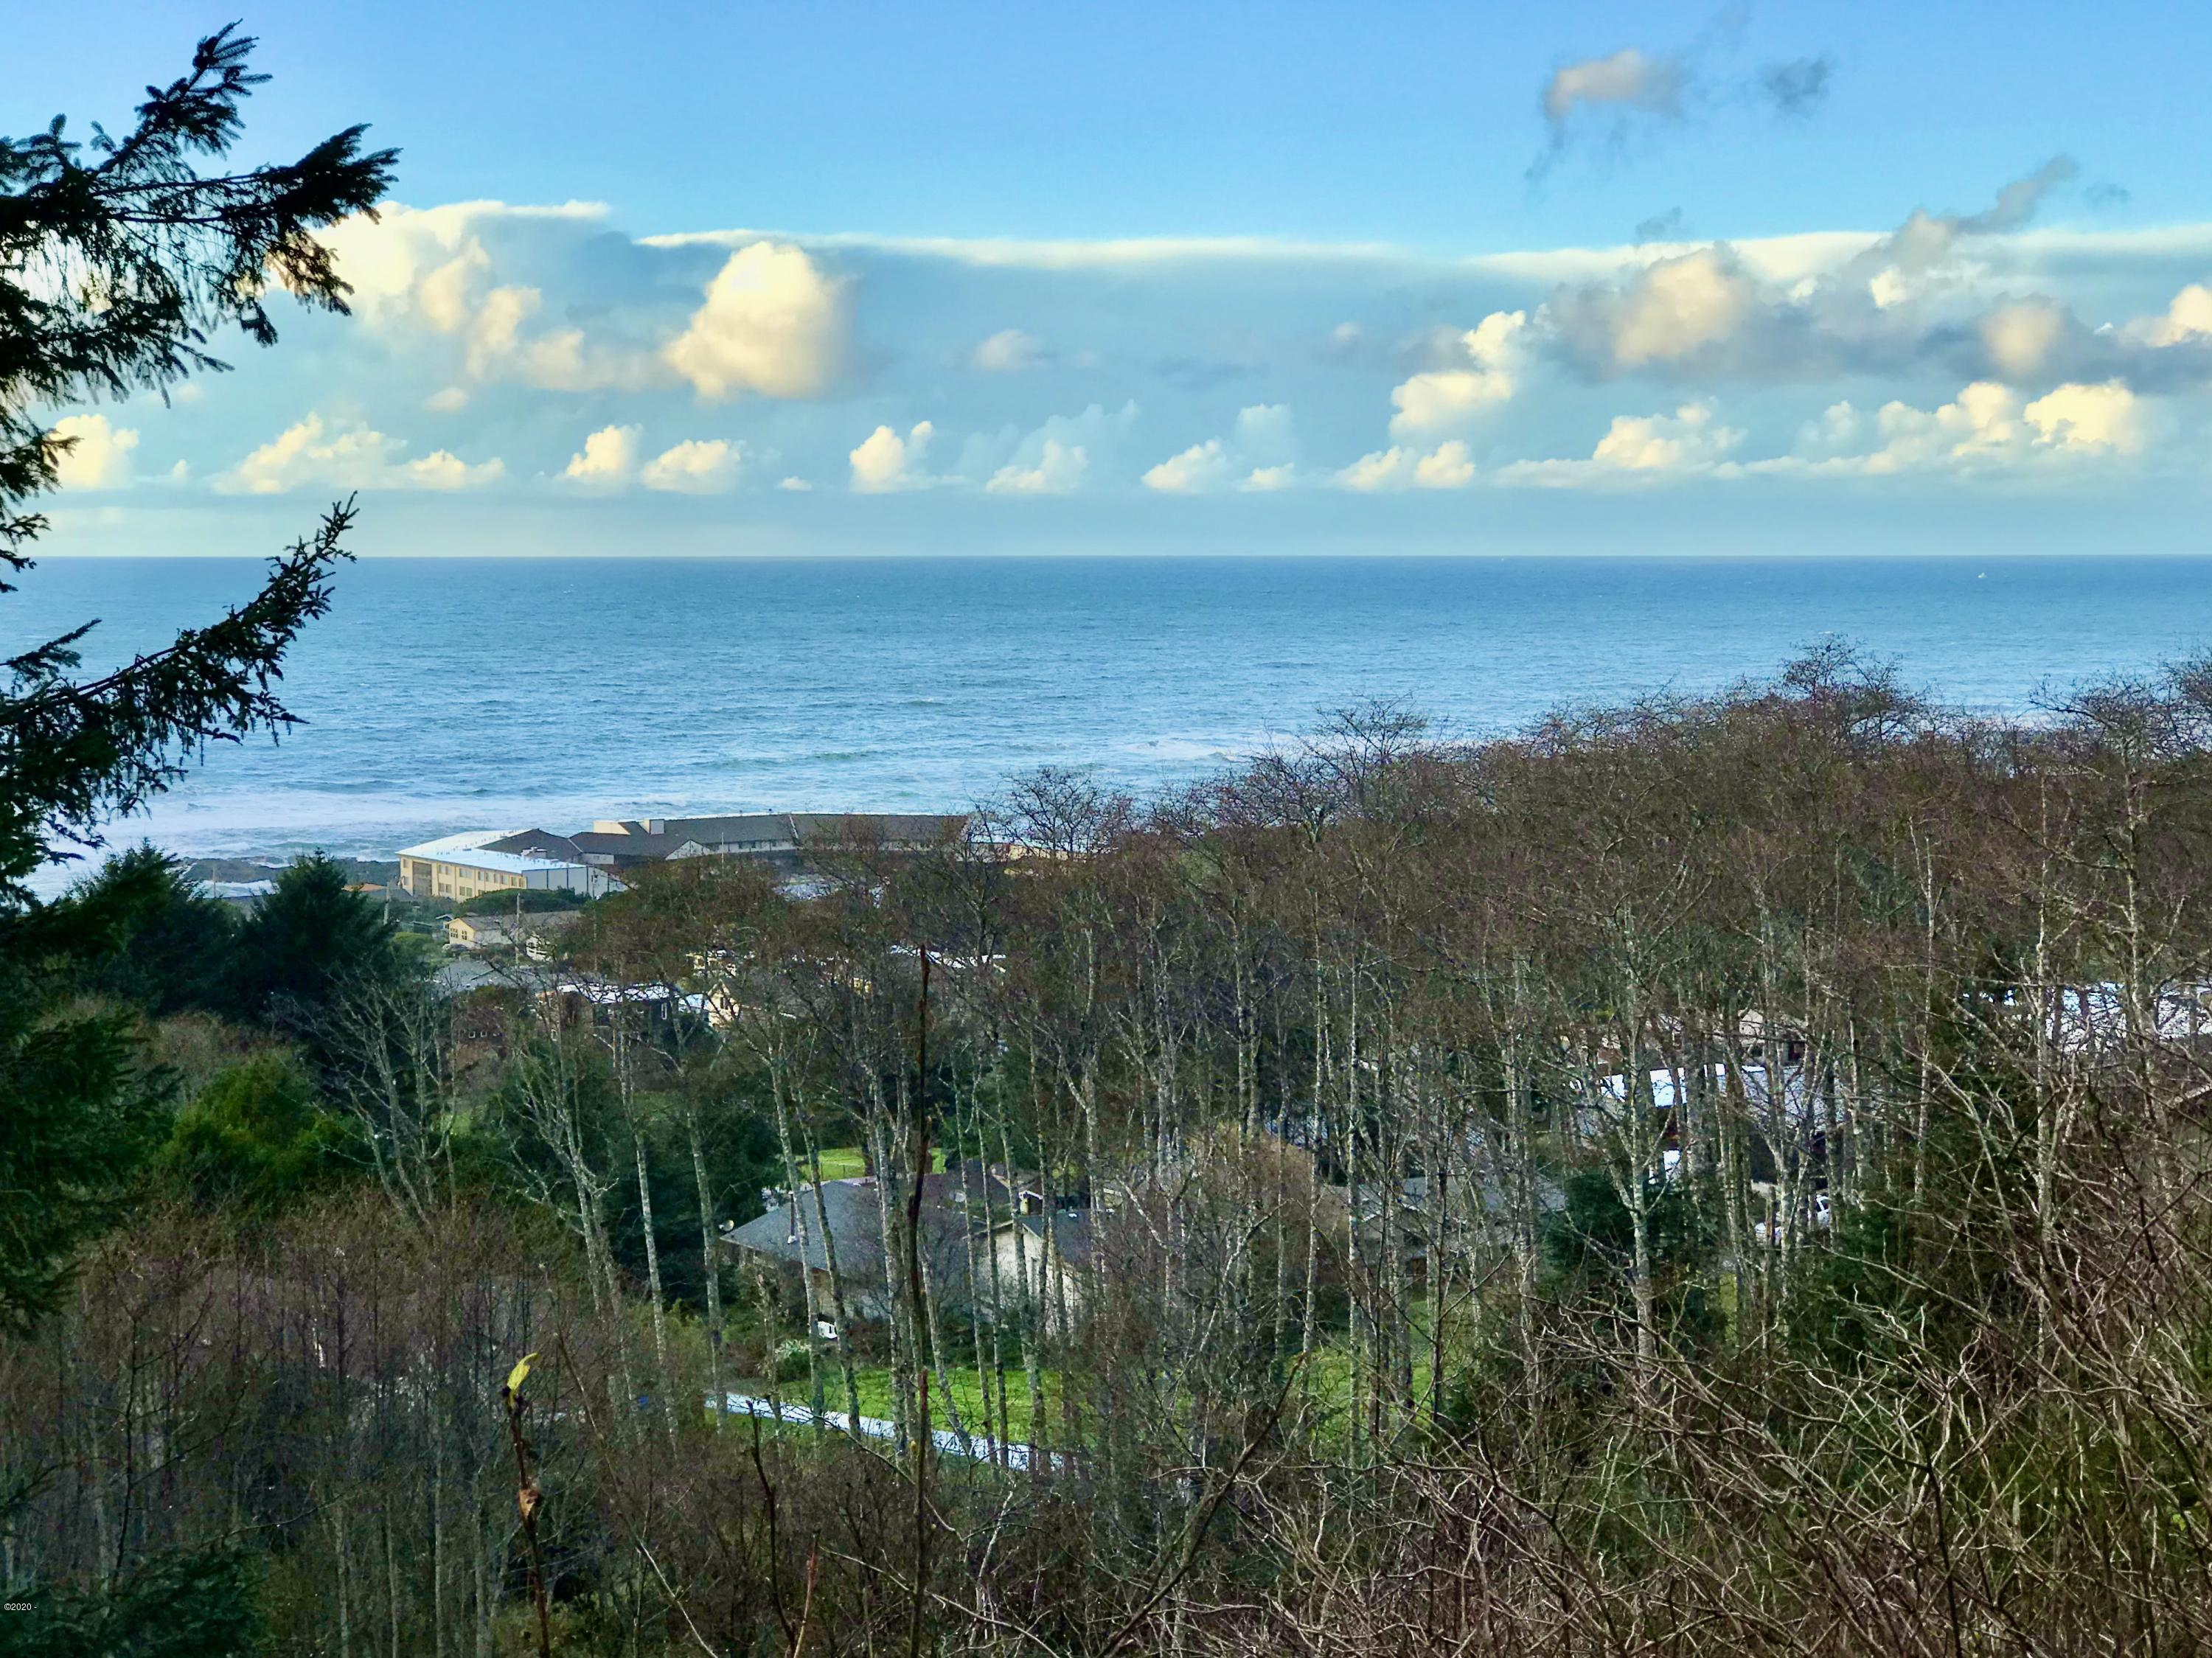 TL 2000 Hanley Dr, Yachats, OR 97498 - View from lot